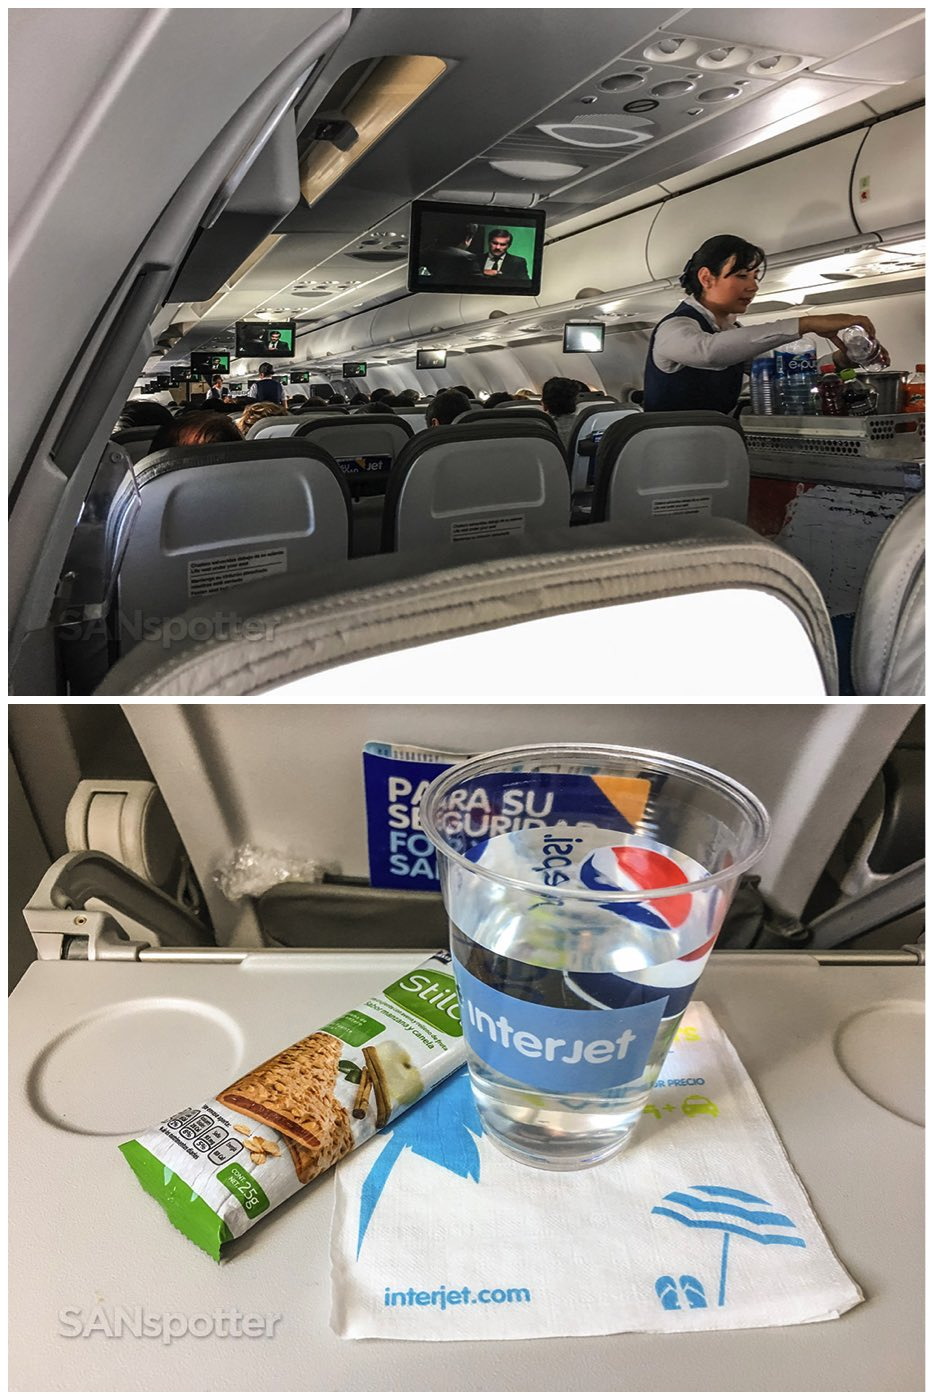 Interjet in flight snack